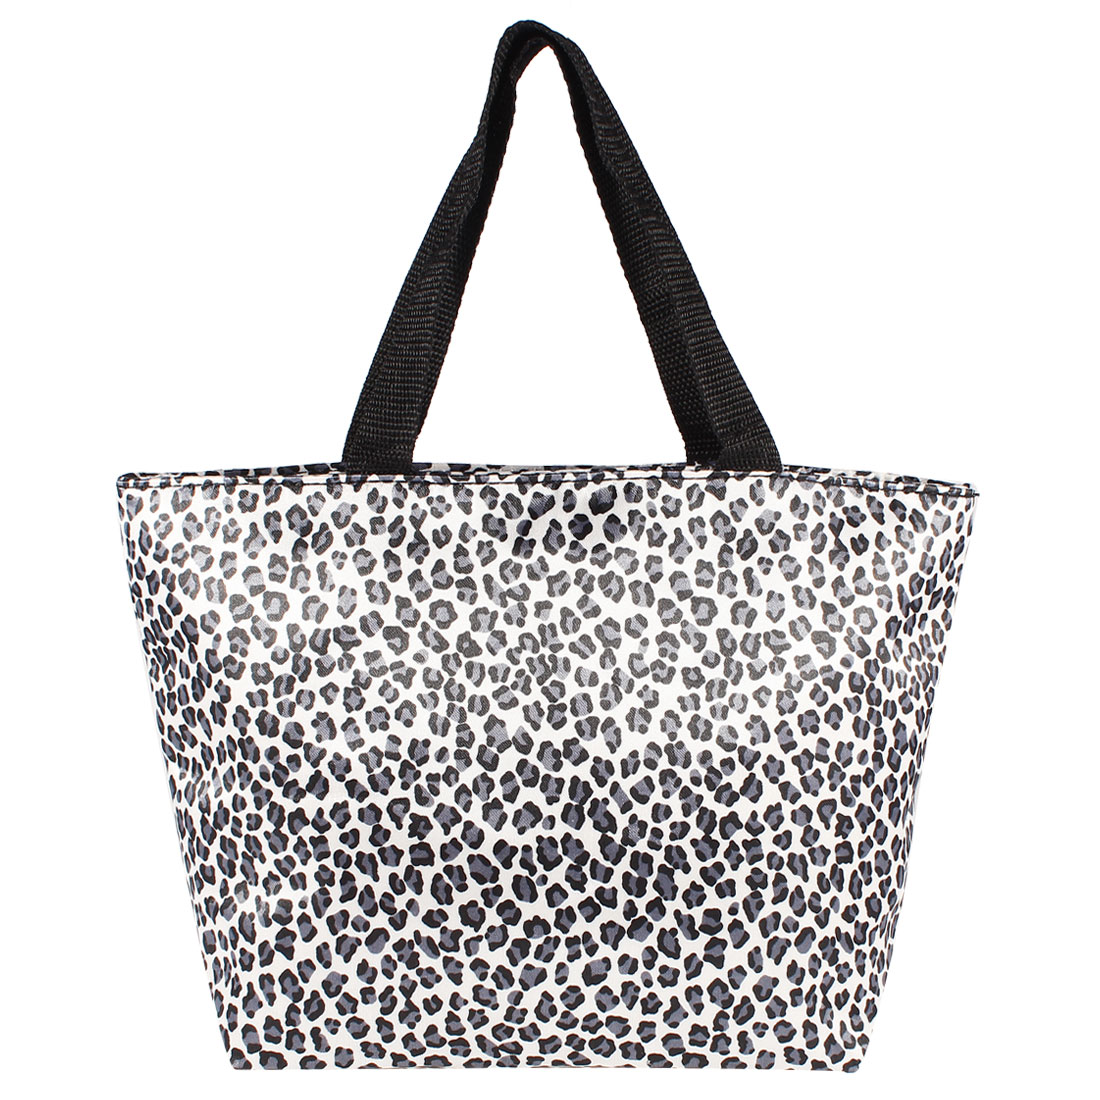 Woman Portable Blue White Leopard Style Shopping Bag Tote Bag